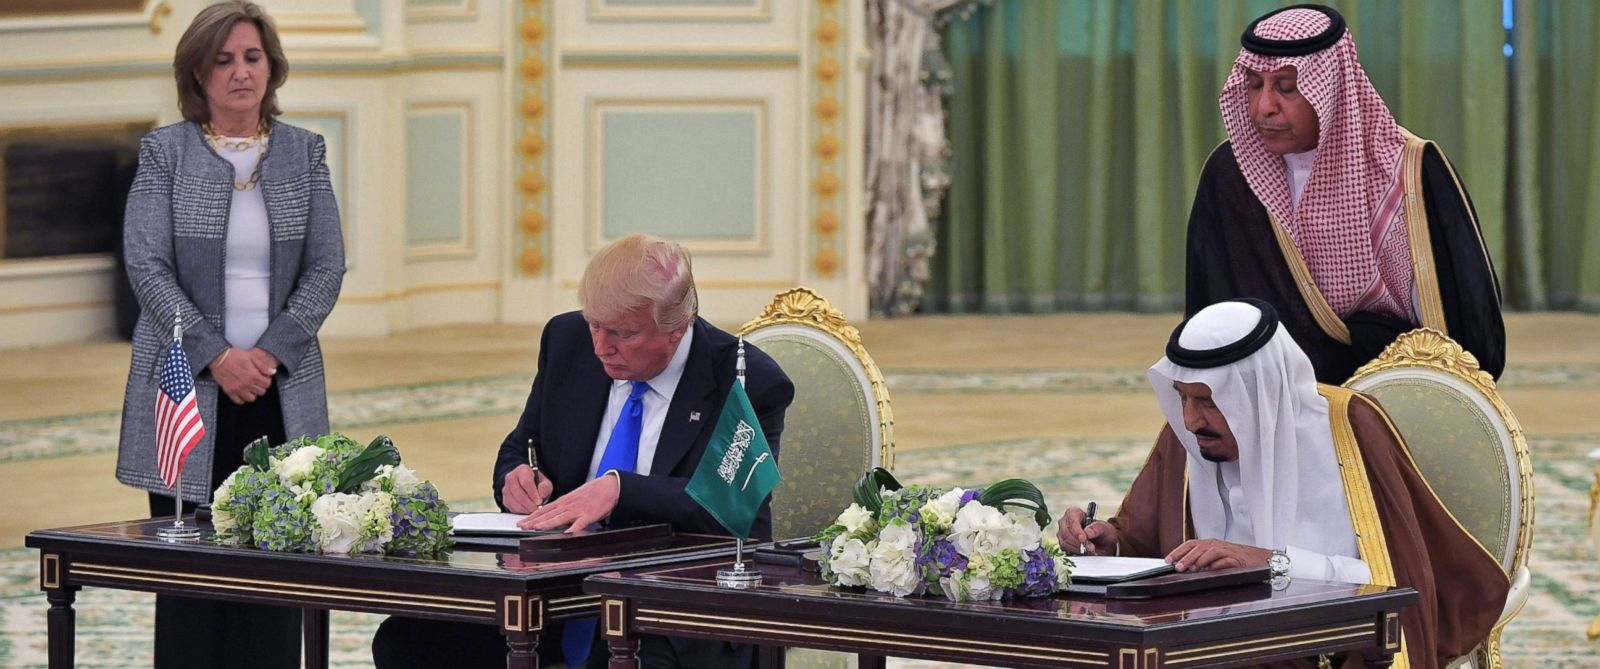 PHOTO: President Donald Trump and Saudi Arabias King Salman bin Abdulaziz al-Saud take part in a signing ceremony at the Saudi Royal Court in Riyadh, May 20, 2017.